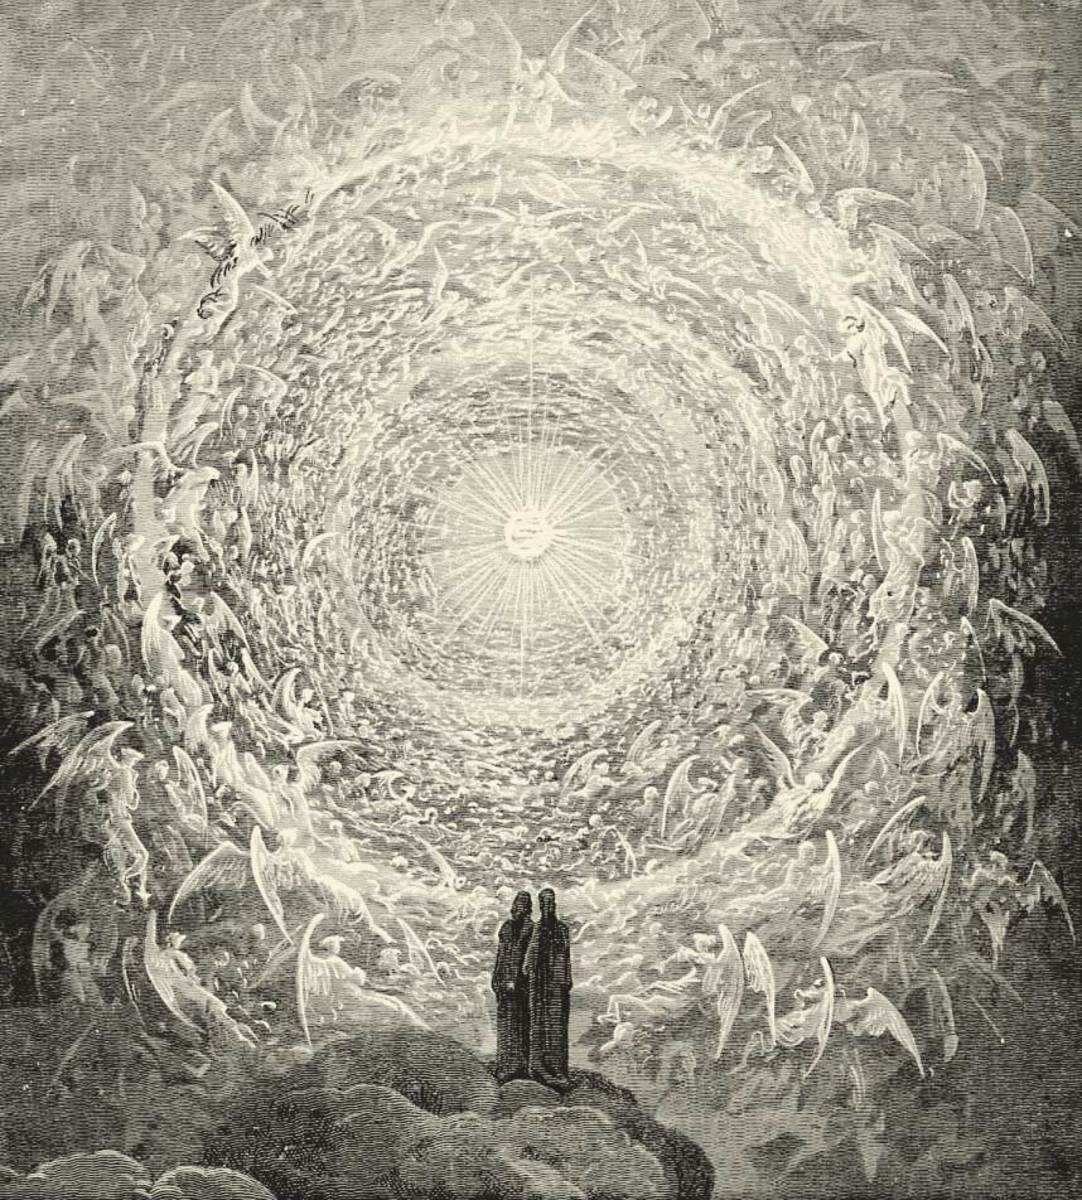 """PARADISE"" FOR ""DANTE'S INFERNO"" BY GUSTAVE DORE"